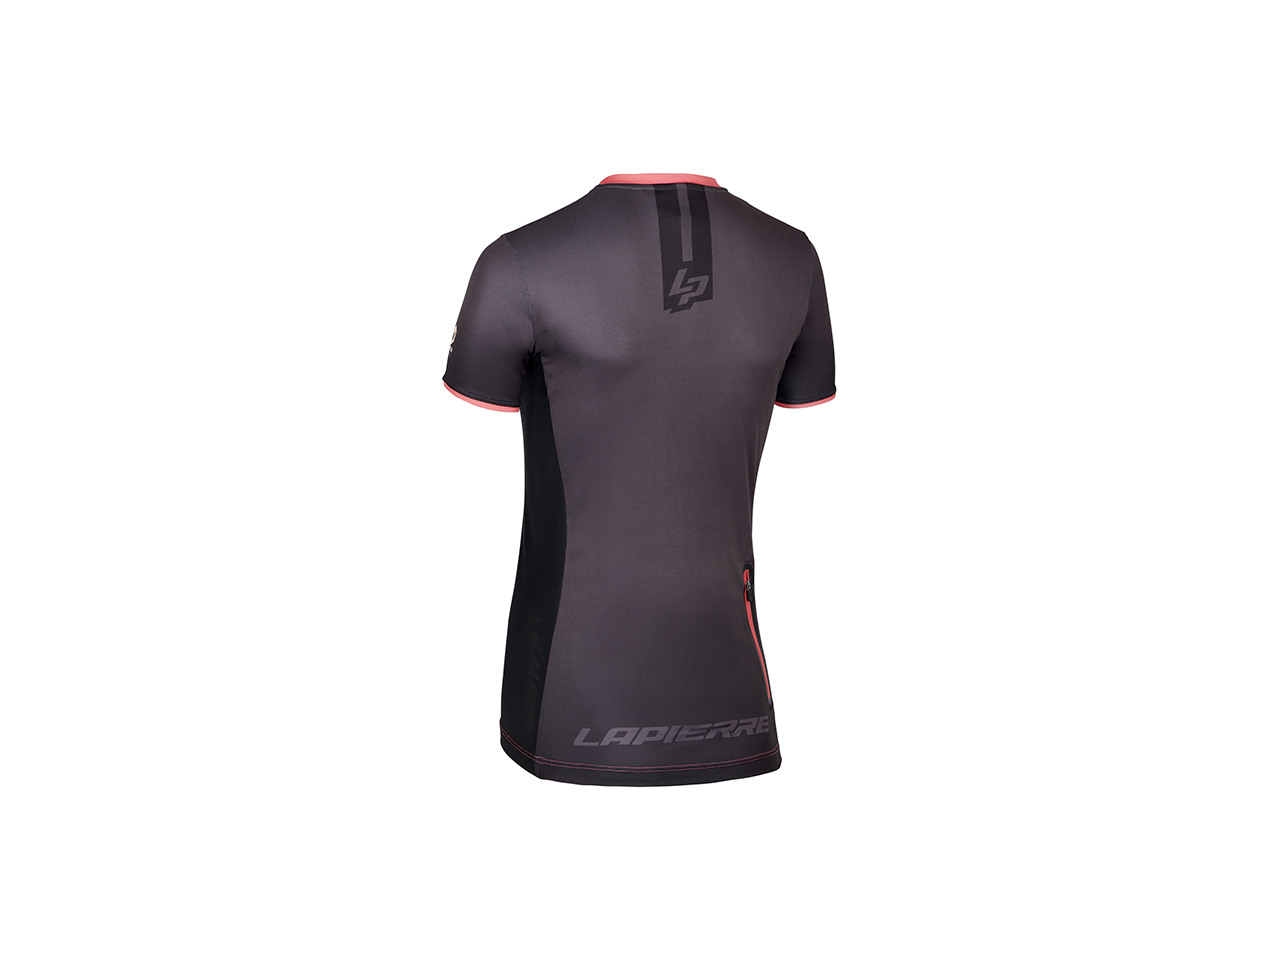 Maillot MTB Mujer LPCC Lapierre 2